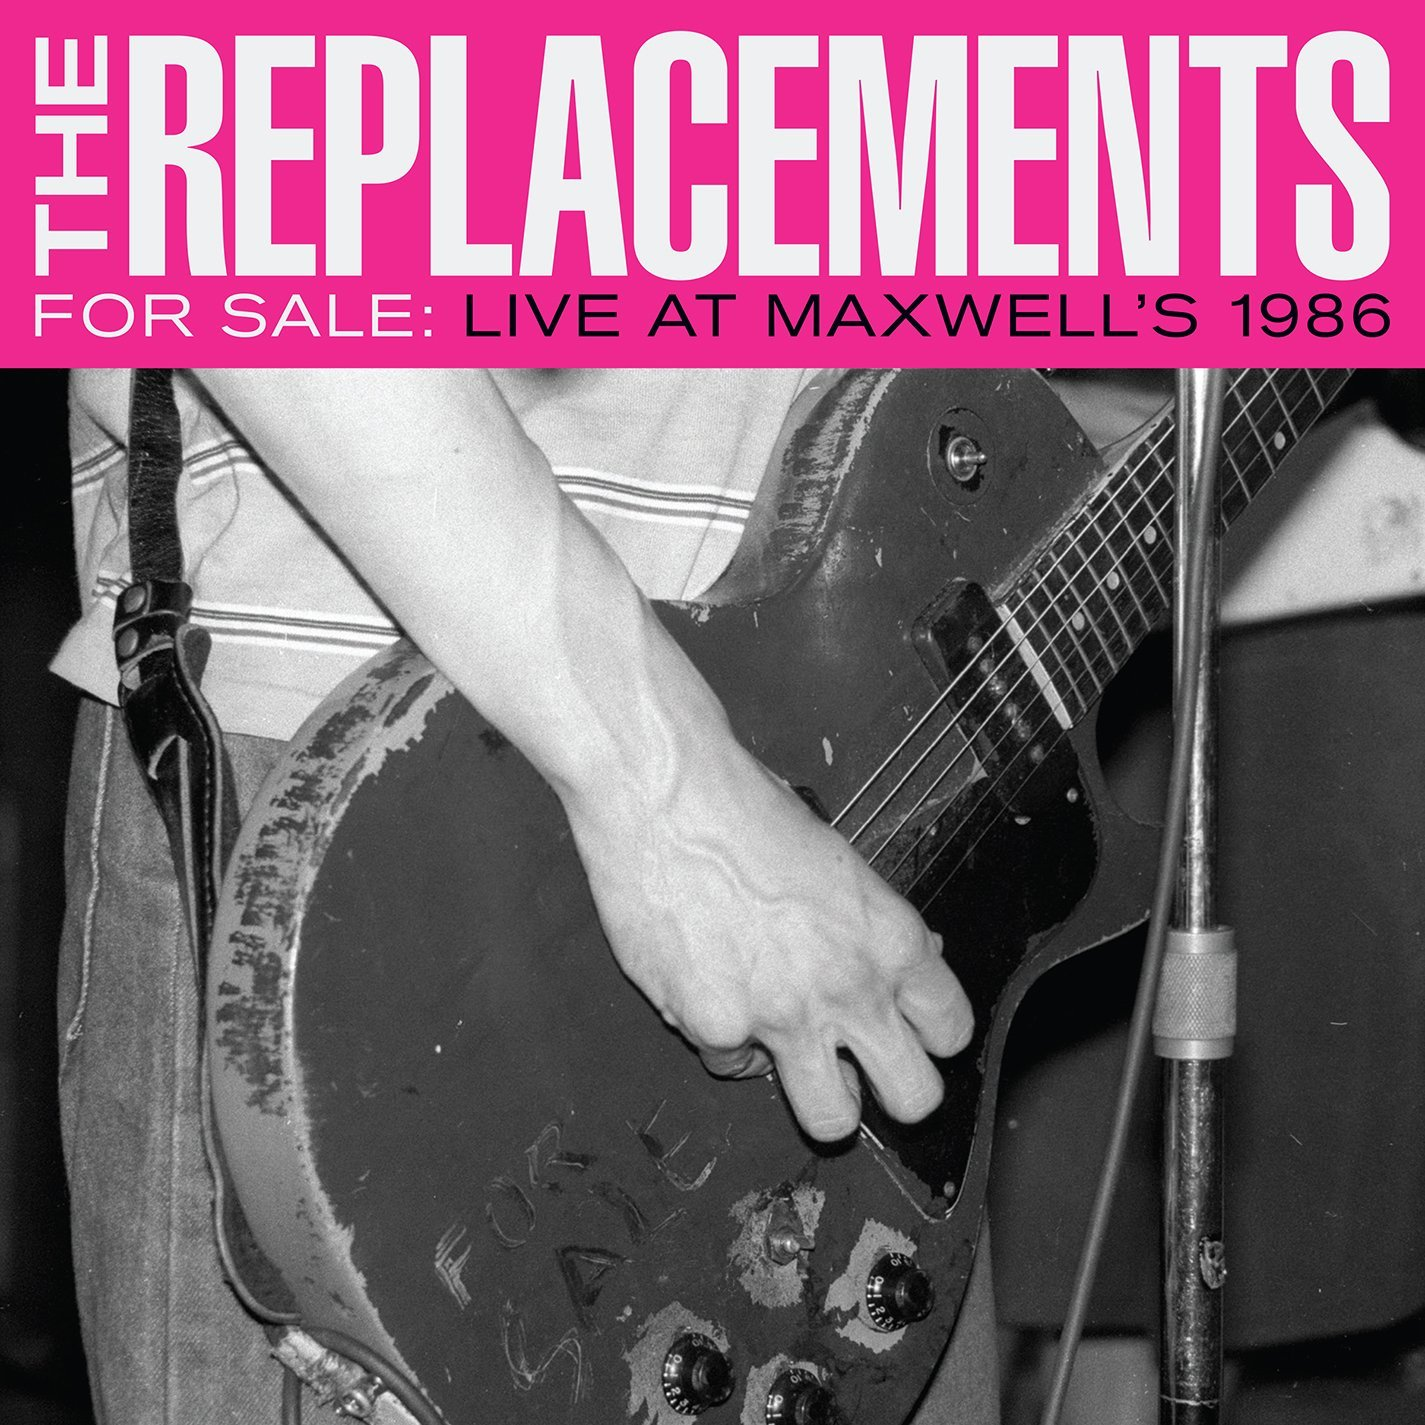 THE REPLACEMENTS. - Página 11 Matsforsale